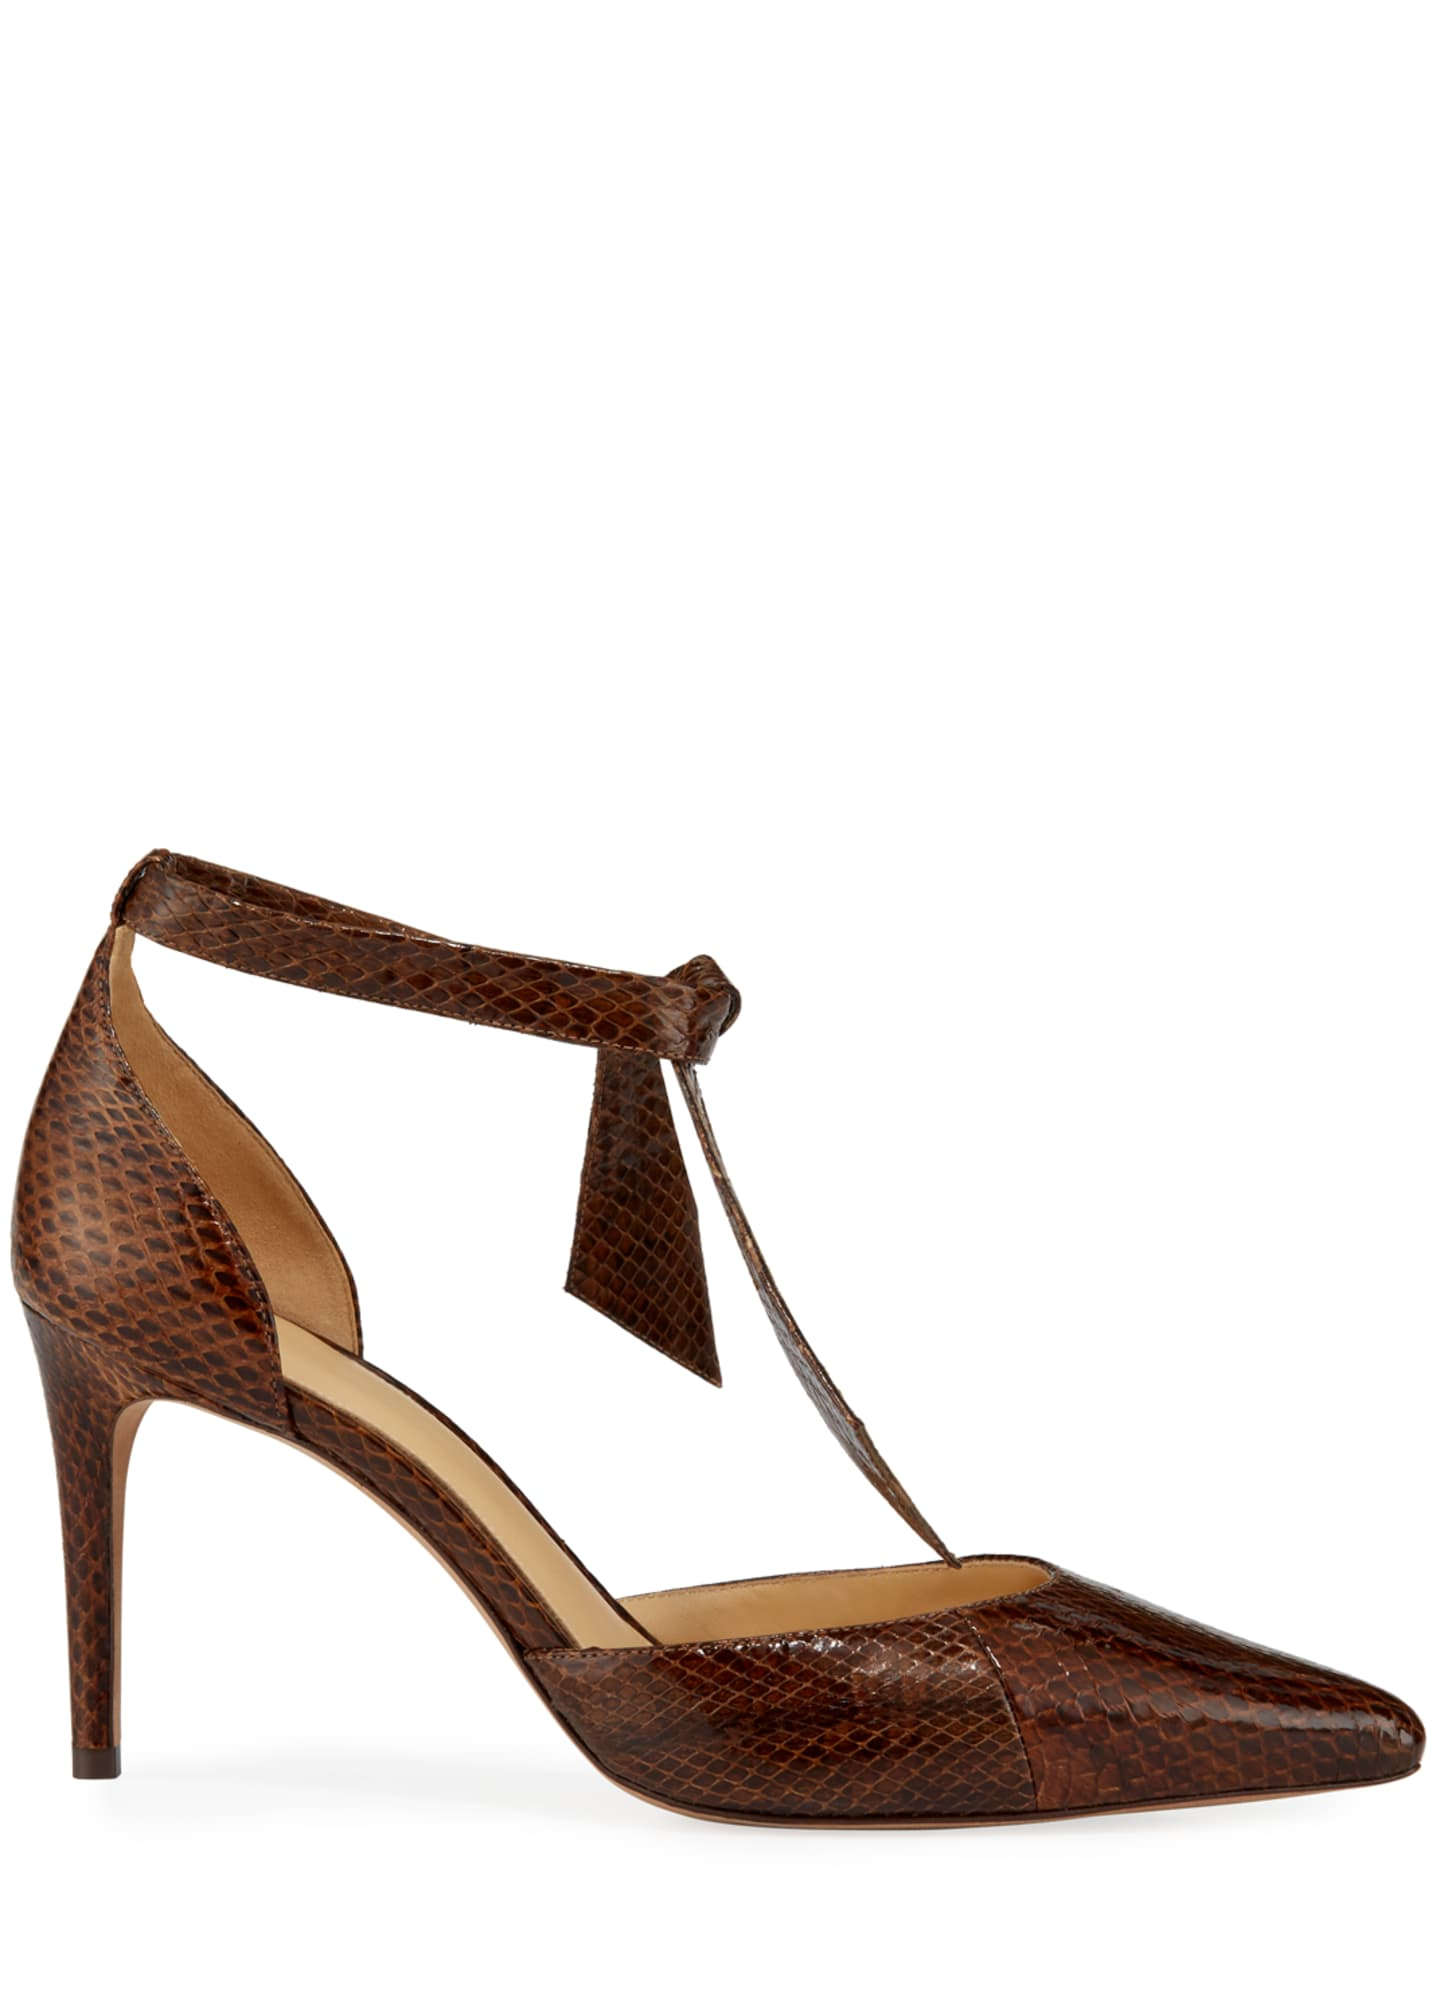 Image 2 of 3: New Clarita Snakeskin Pumps